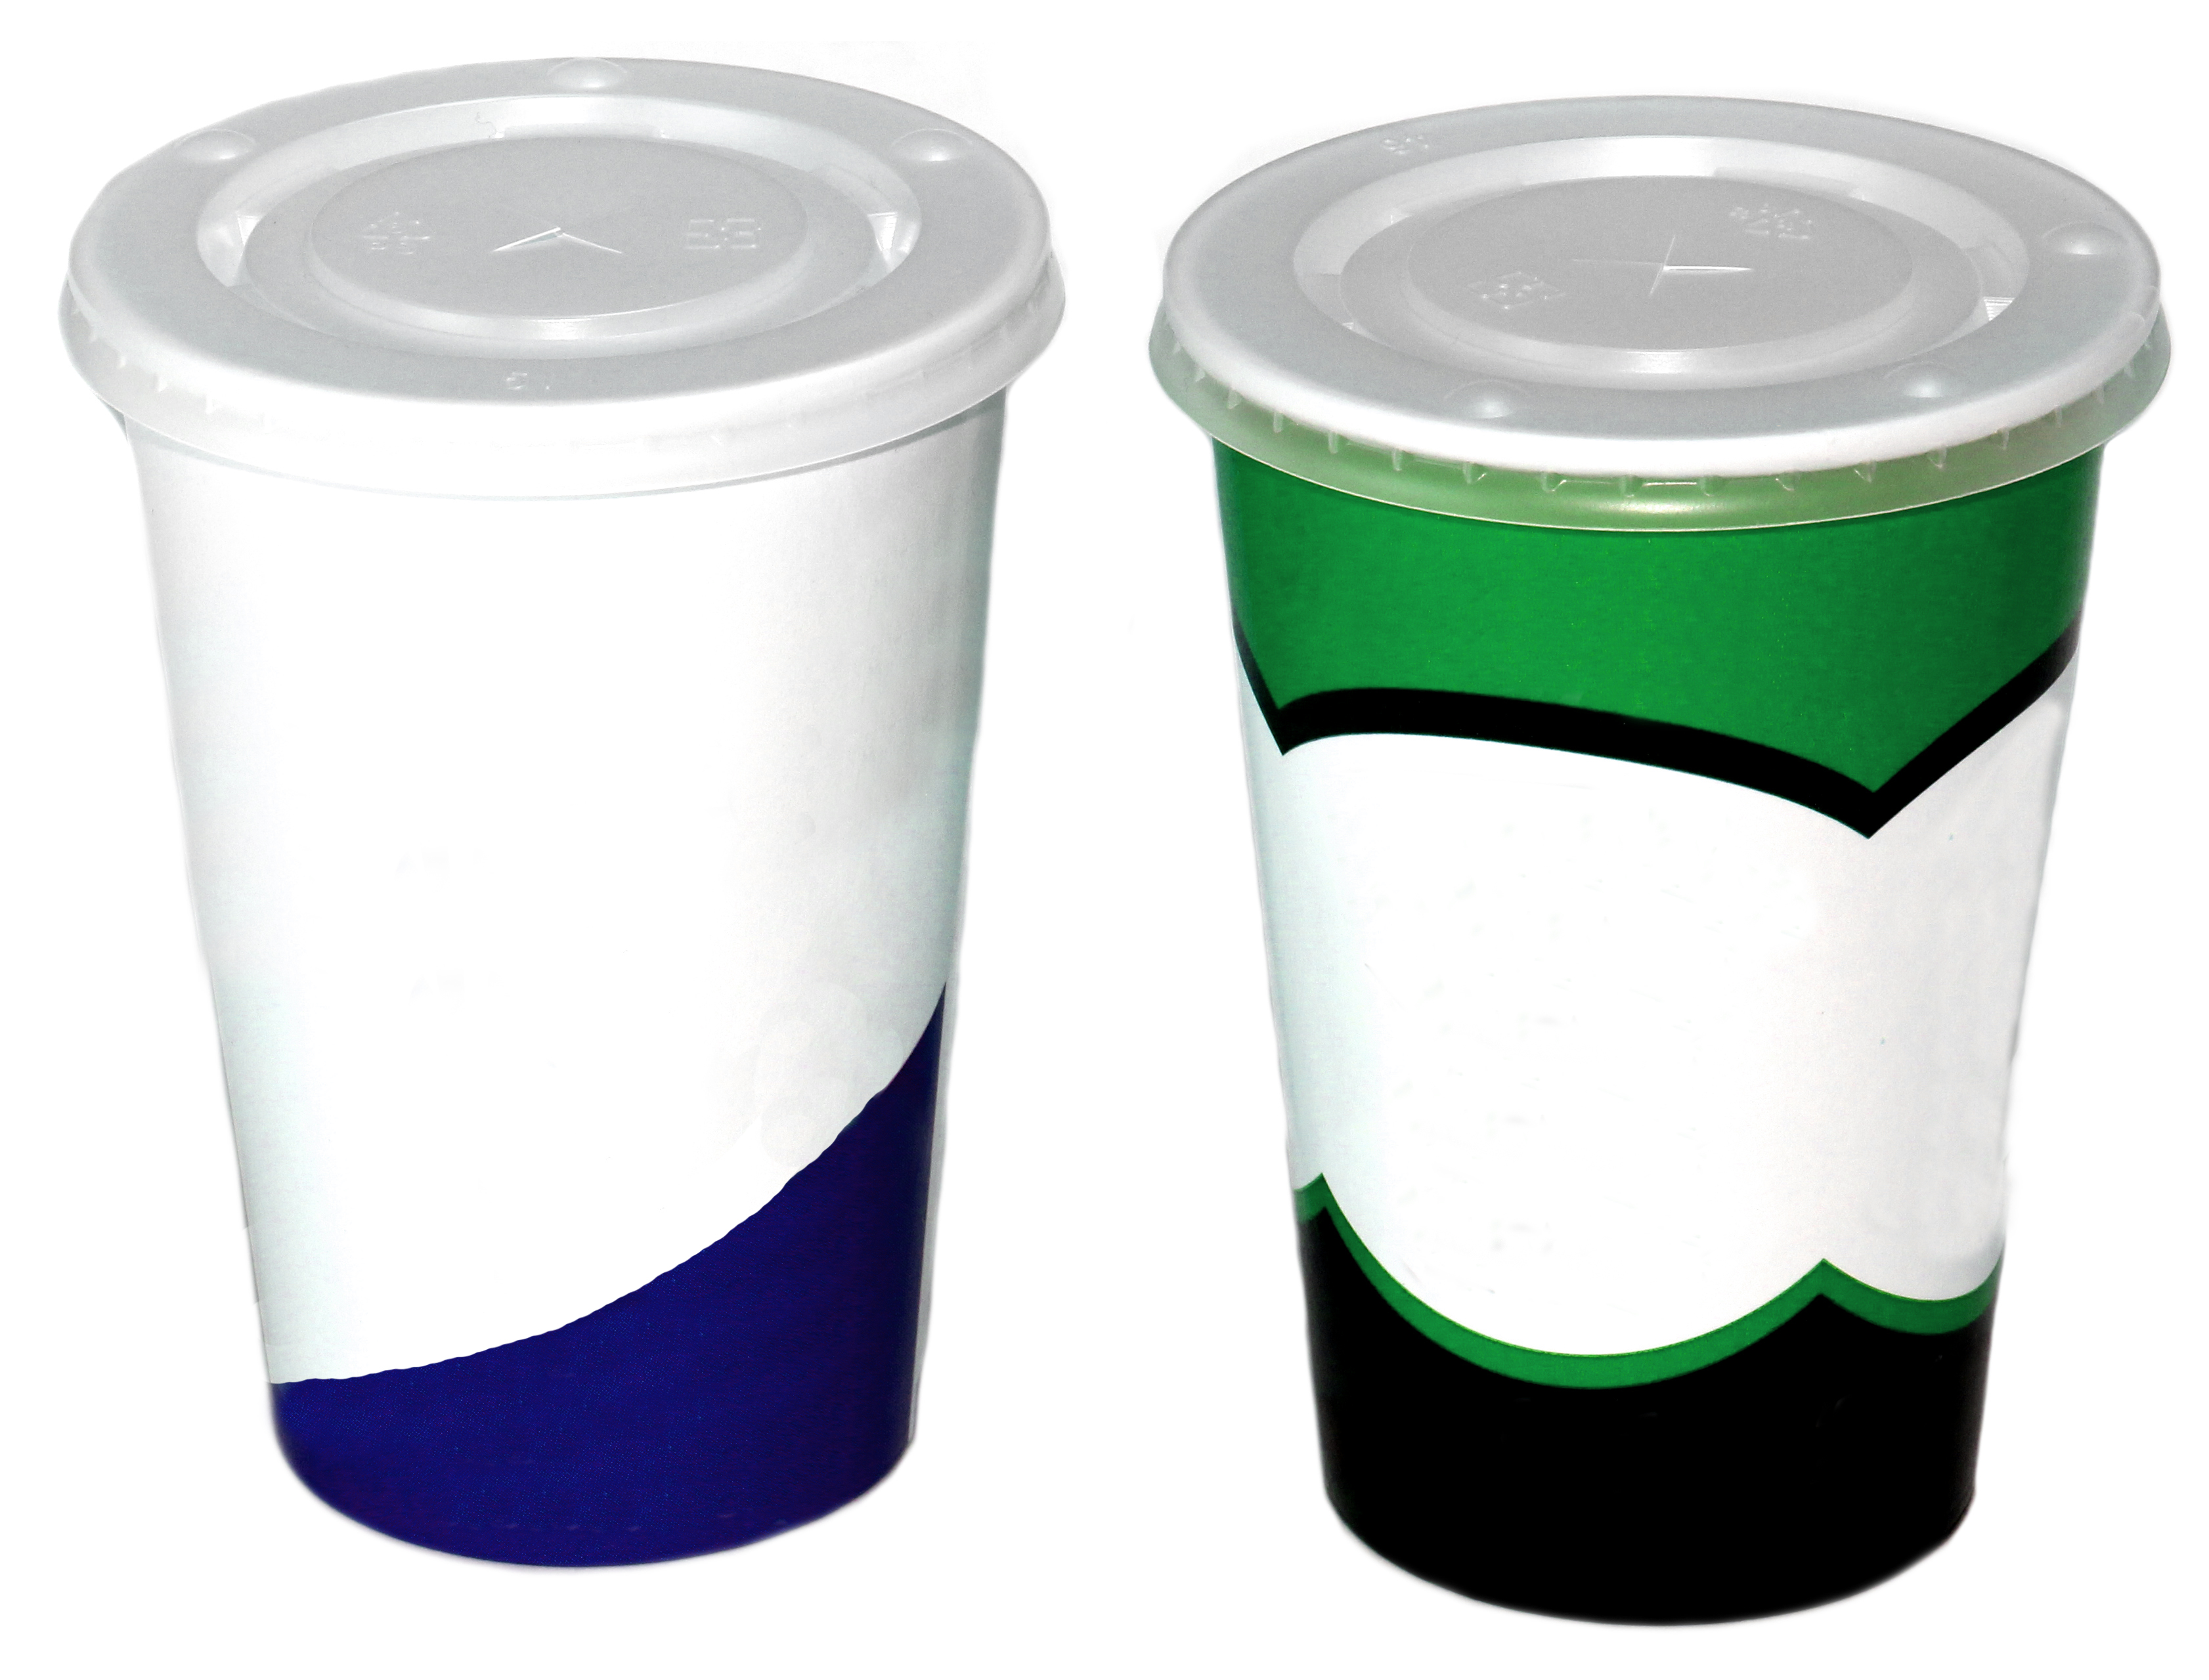 Custom Printed Paper Cold Cups • Sizes: 8, 12, 16, 20, 32 Oz • Minimums: 100 Cases (1,000 Units/case) • Superior Print Quality To Show Your Logo/message